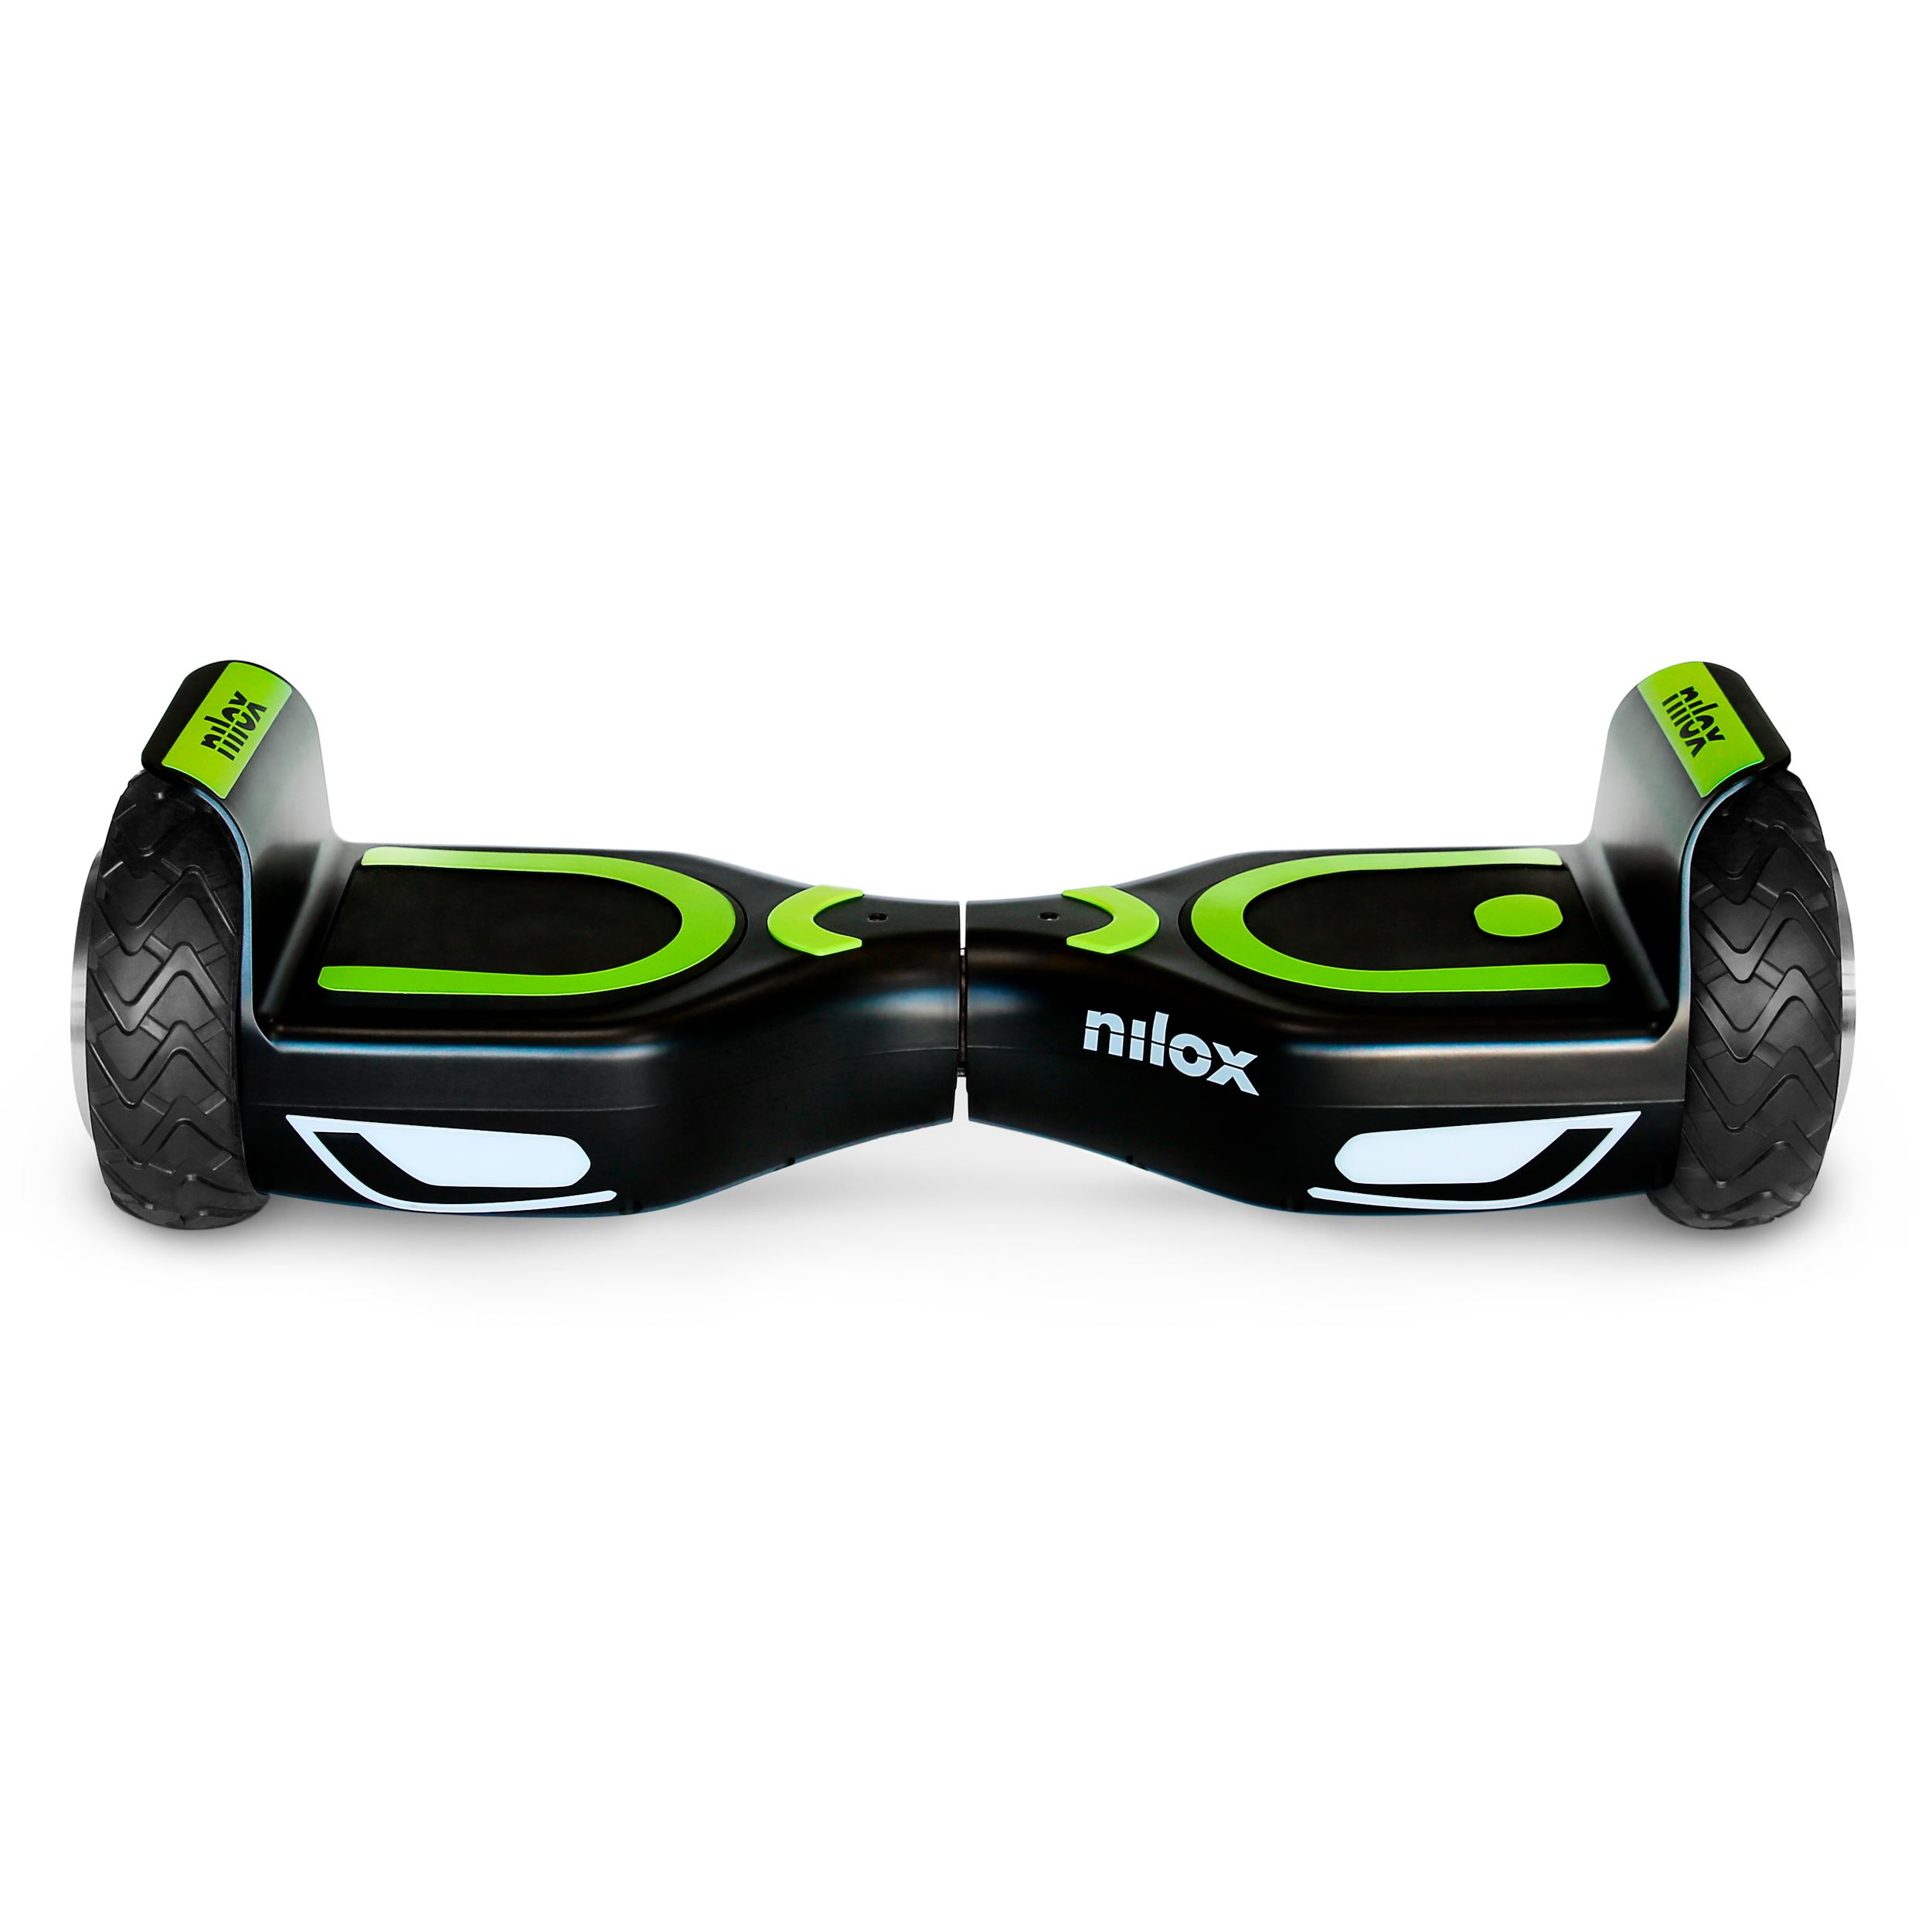 doc-2-hoverboard-black-30nxbk65nwn01-505119-hd.jpg